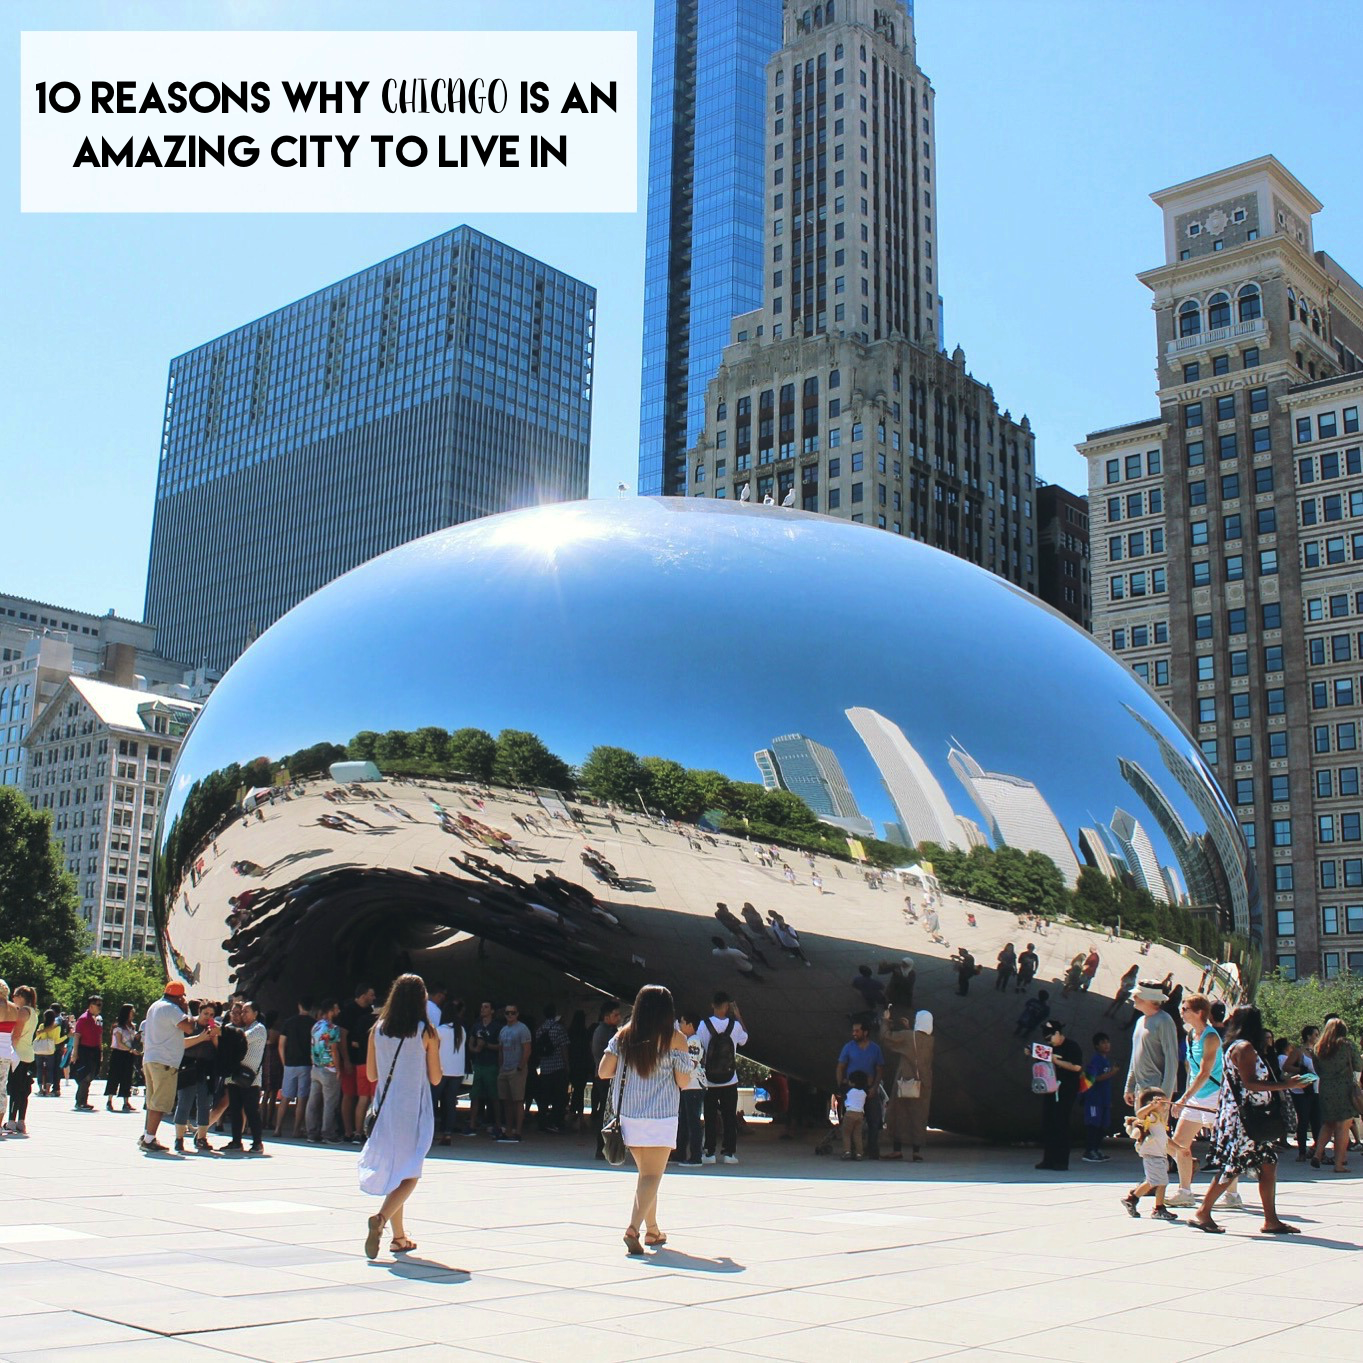 10 Reasons Why Chicago is An Amazing Place to Live